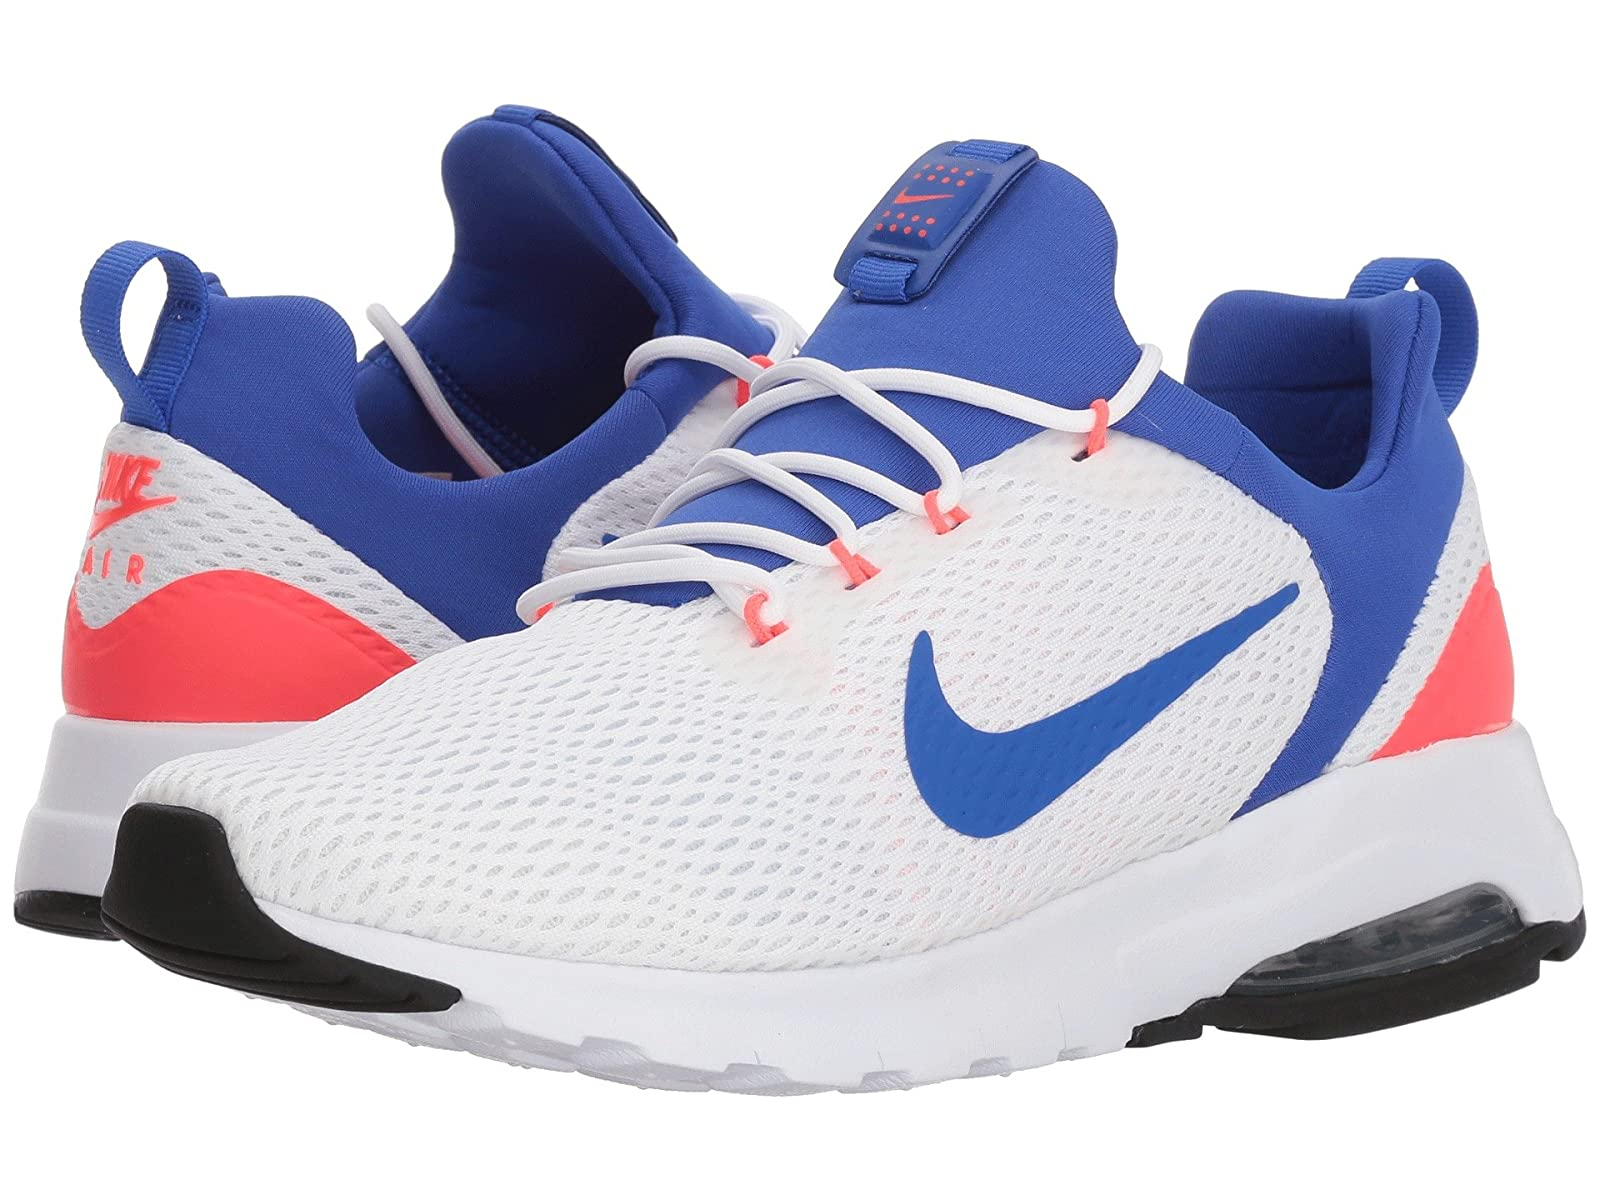 Nike Air Max Motion LW RacerAtmospheric grades have affordable shoes